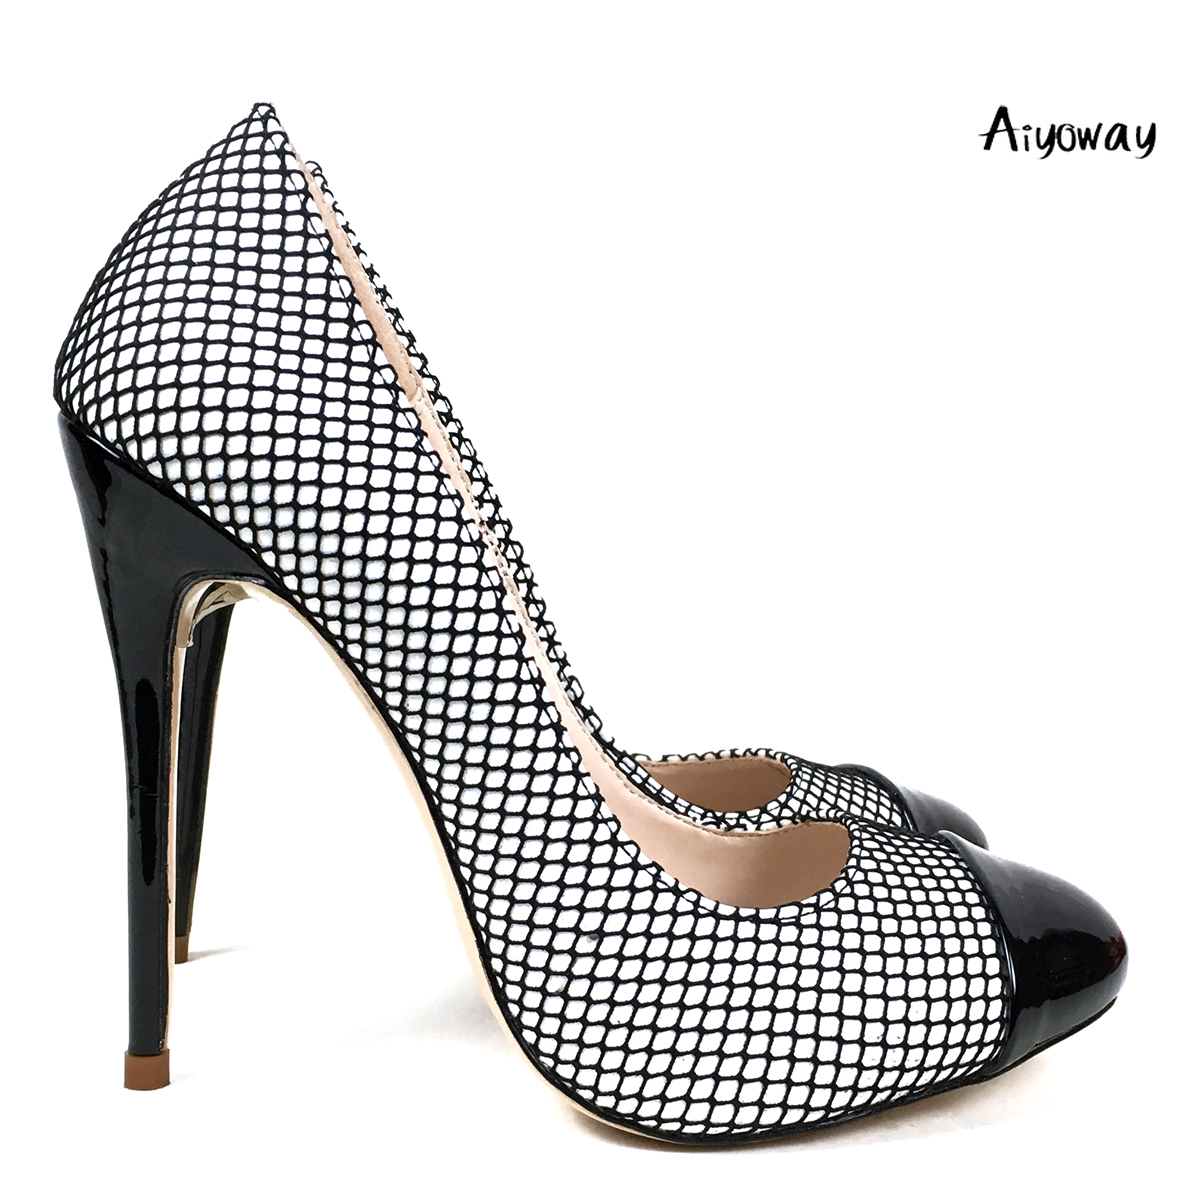 Aiyoway 2019 New Fashion Women Shoes Round Toe High Heels Pumps Black Mesh Stiletto Ladies Wedding Party Sexy